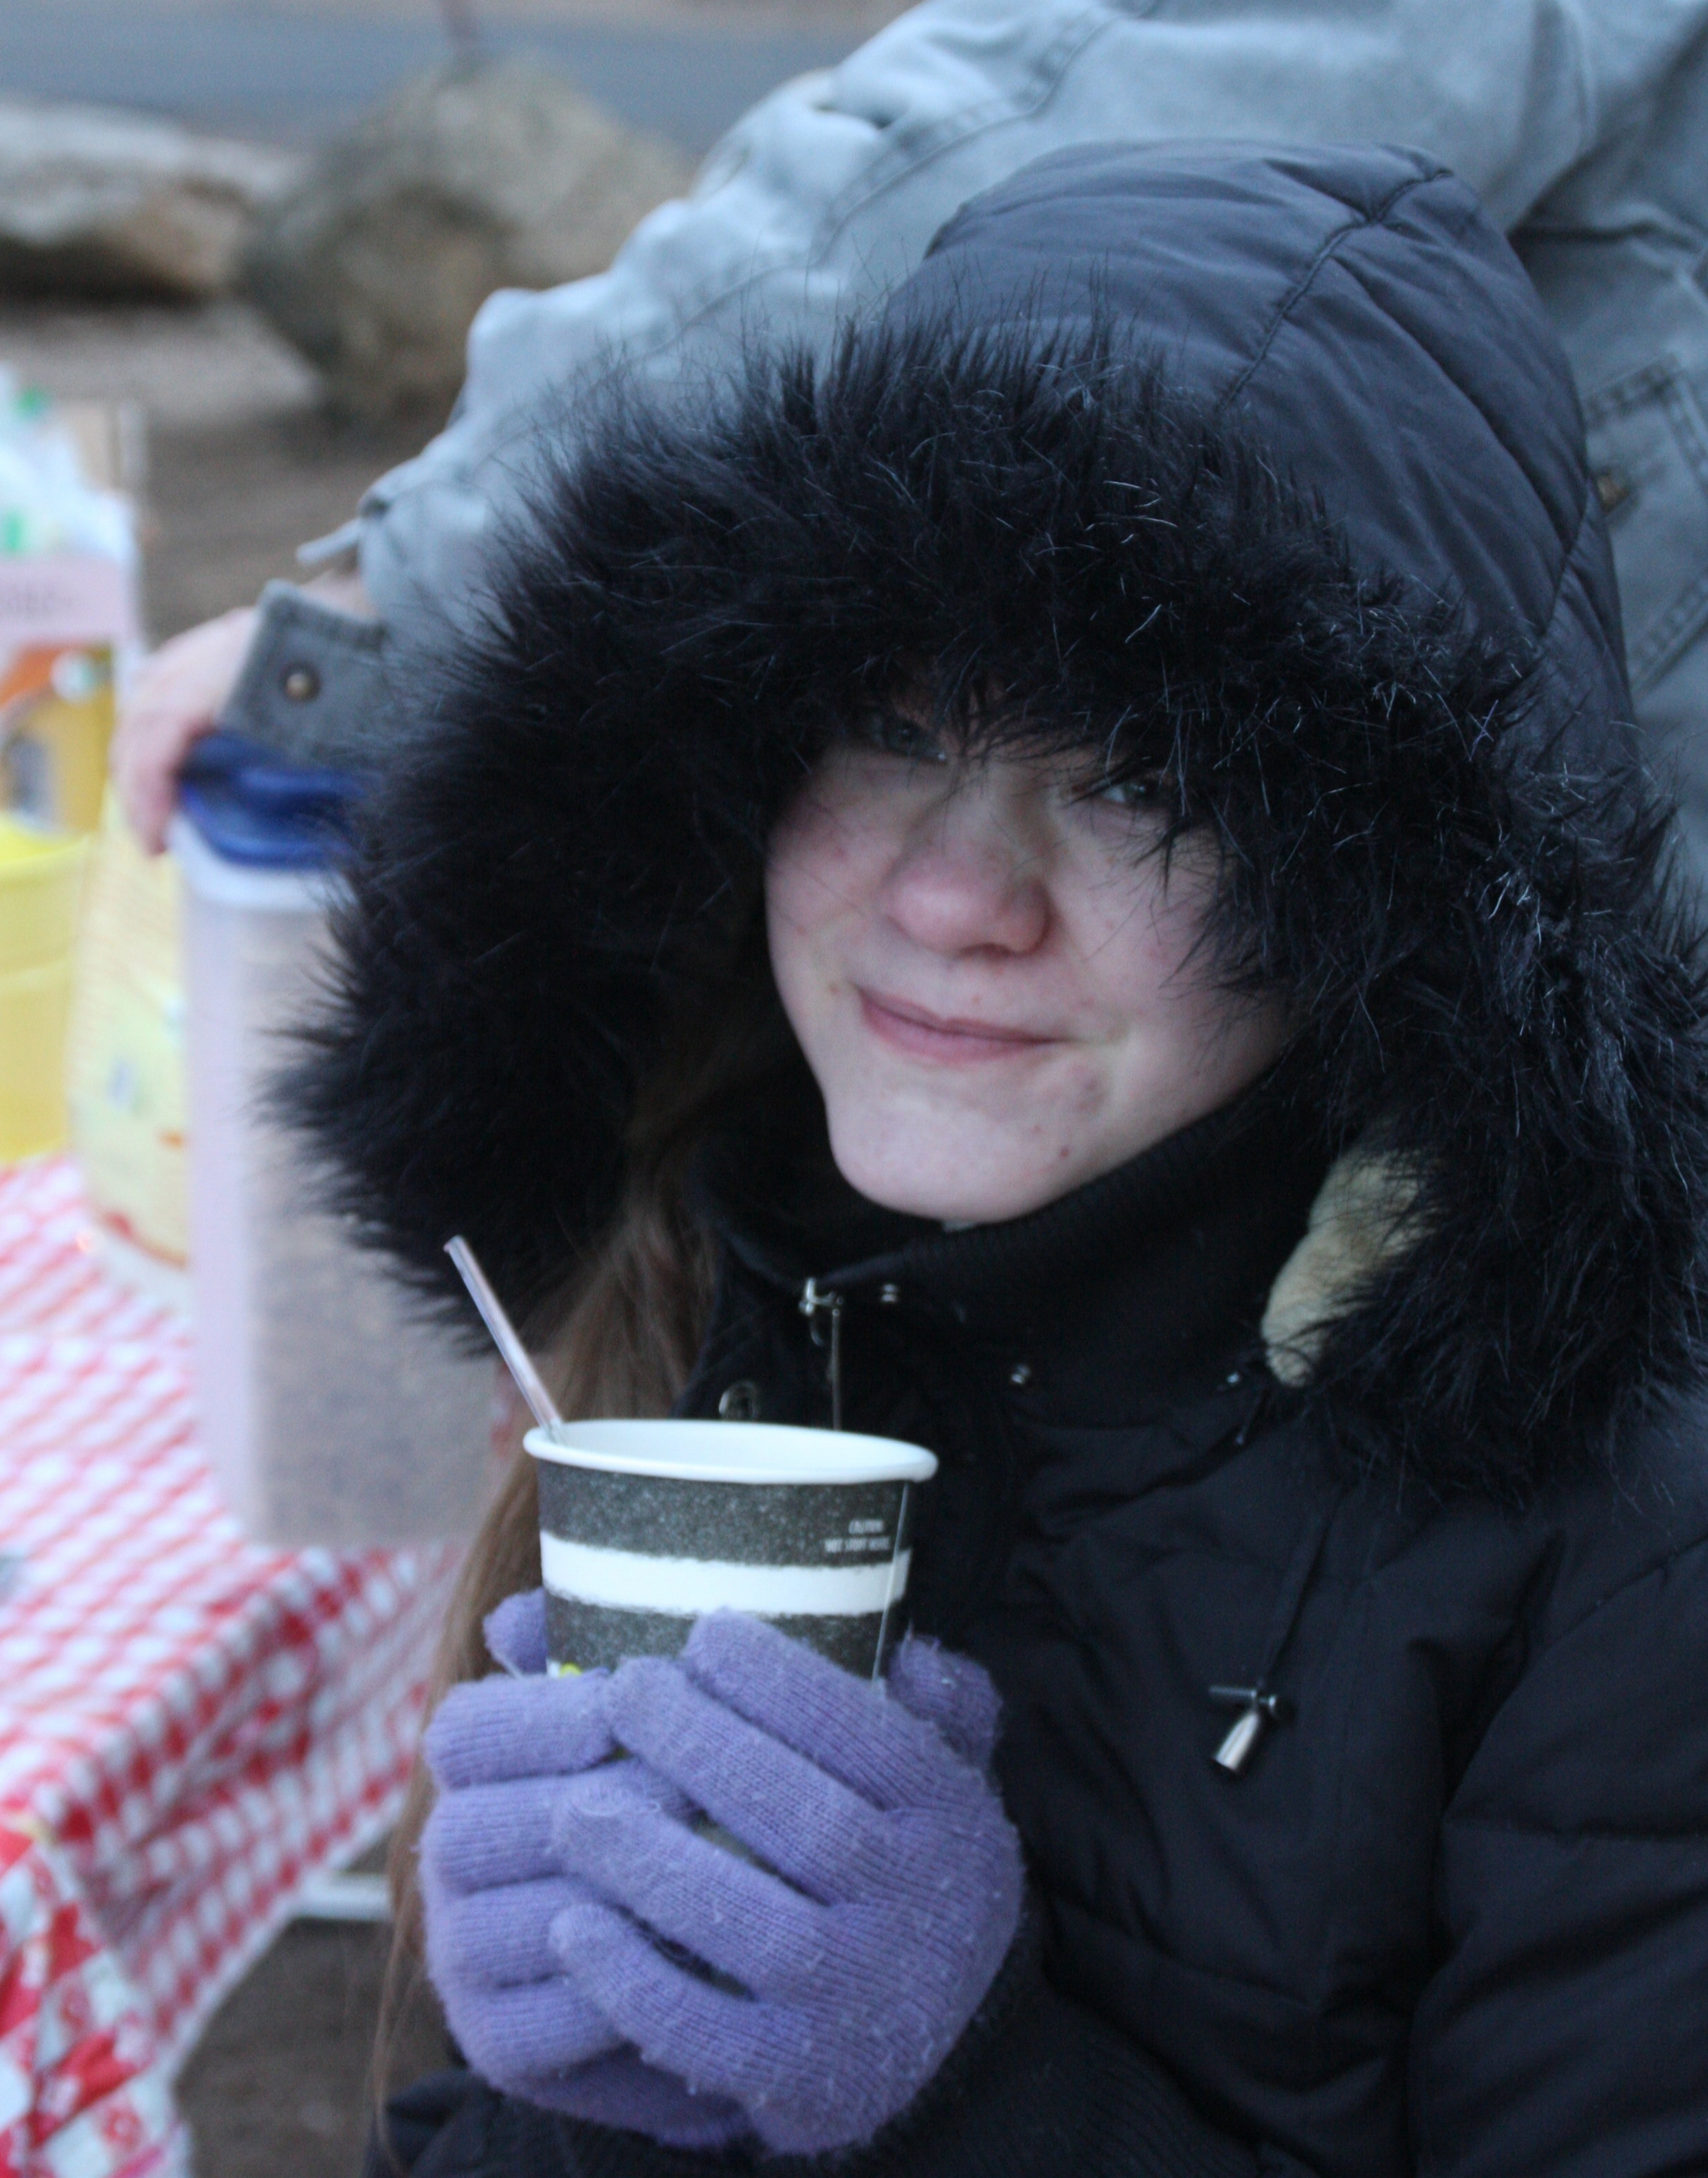 Susanna trying to stay warm while eating breakfast.